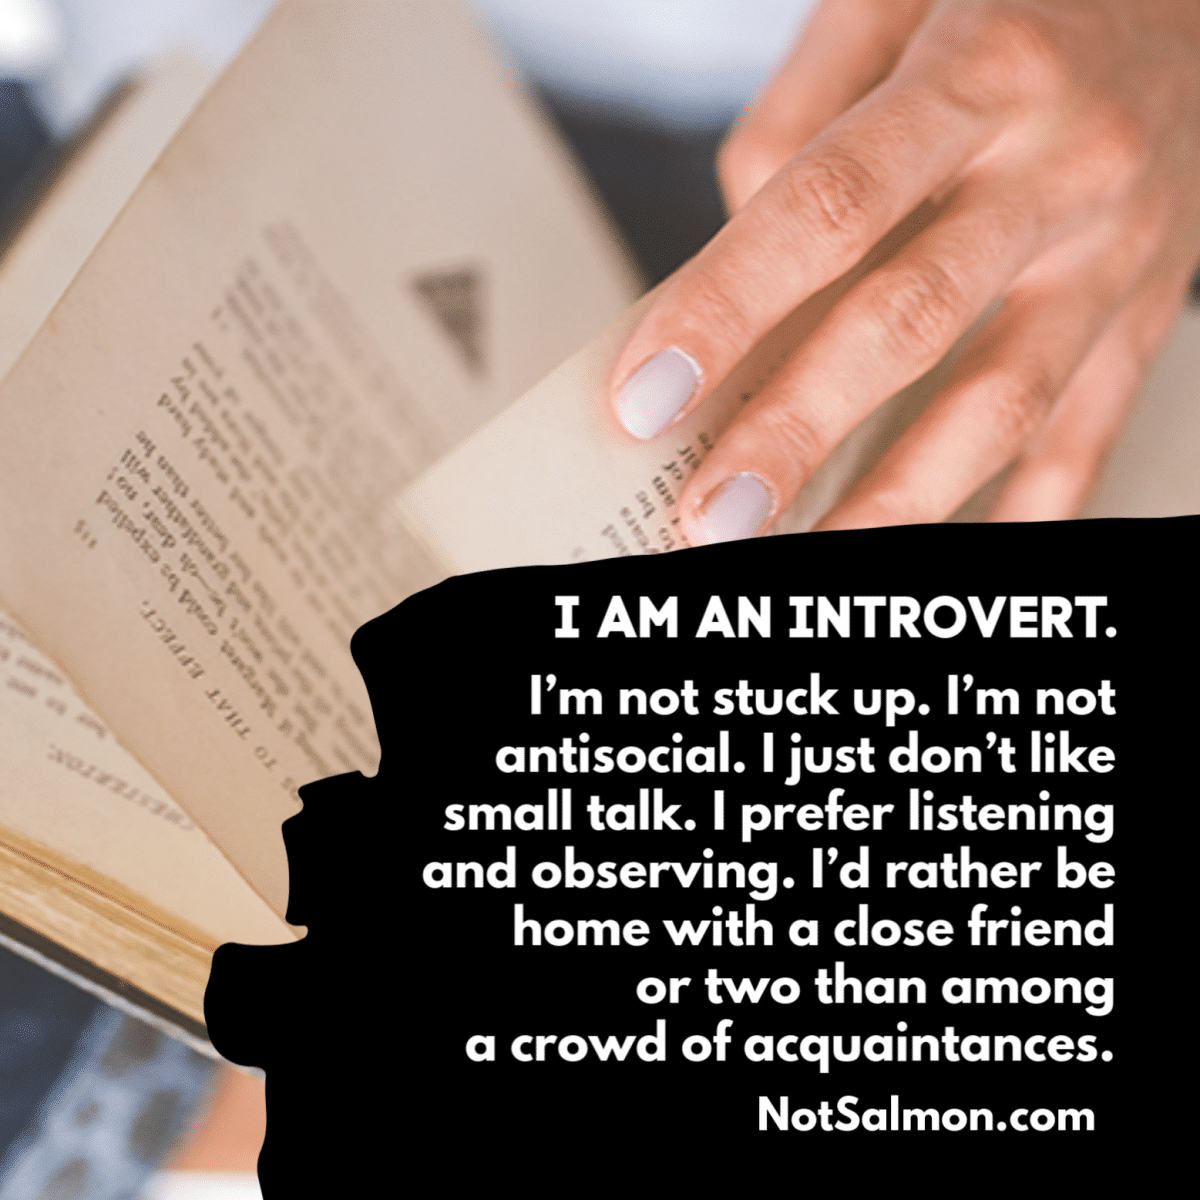 Introvert Definition and Quote To Explain The Mindset